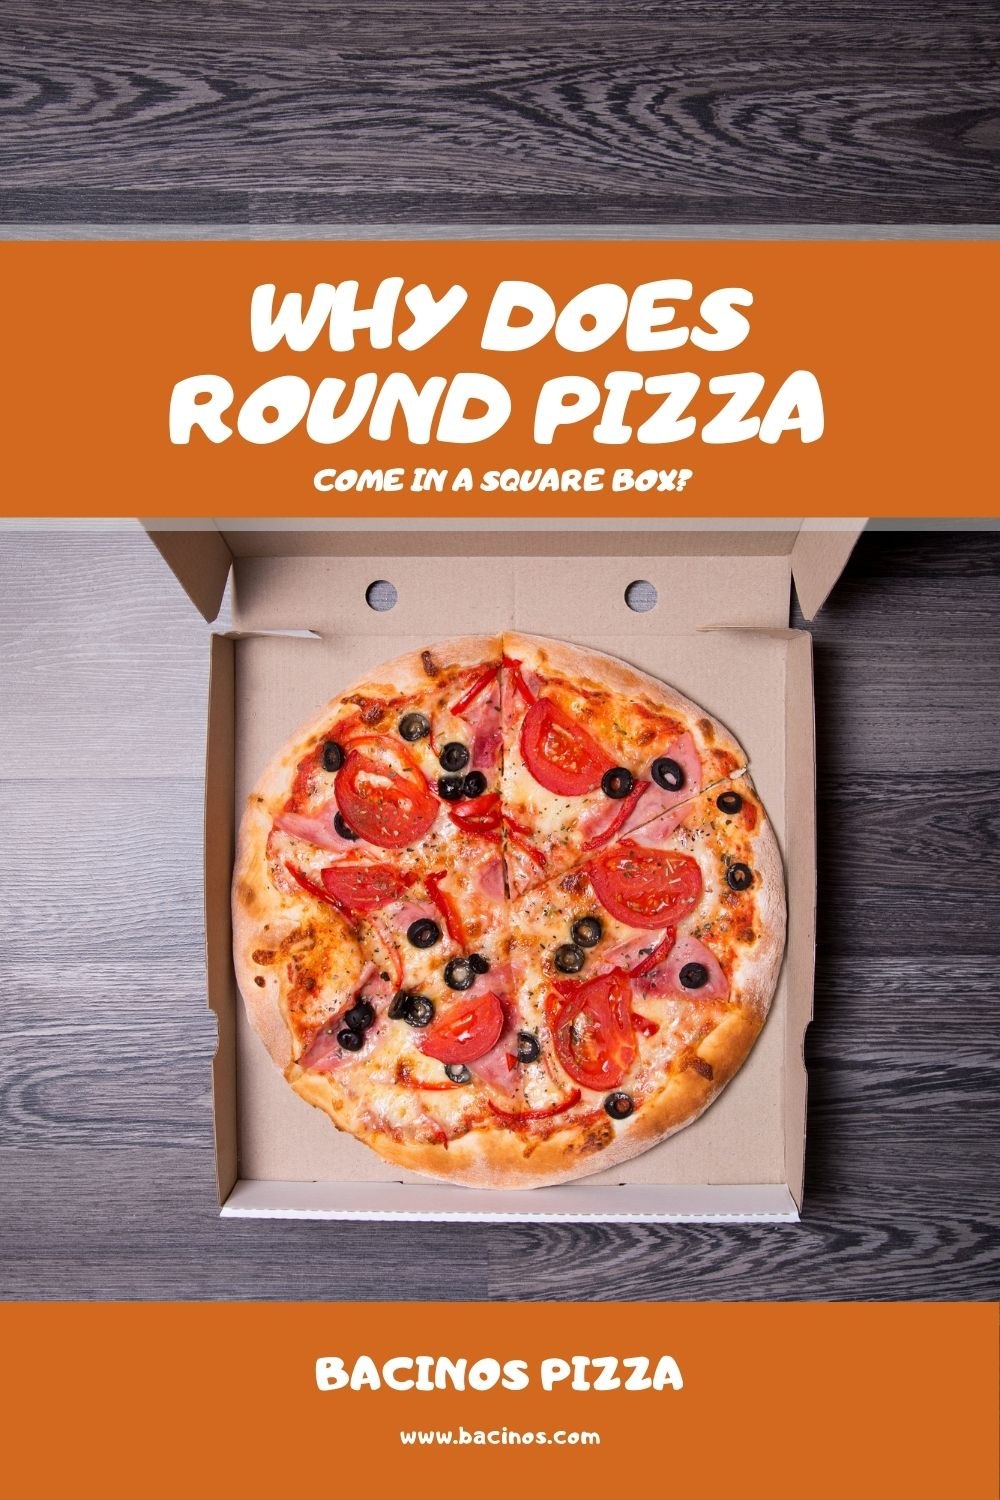 Why Does Round Pizza Come In A Square Box (Main Reasons) 1